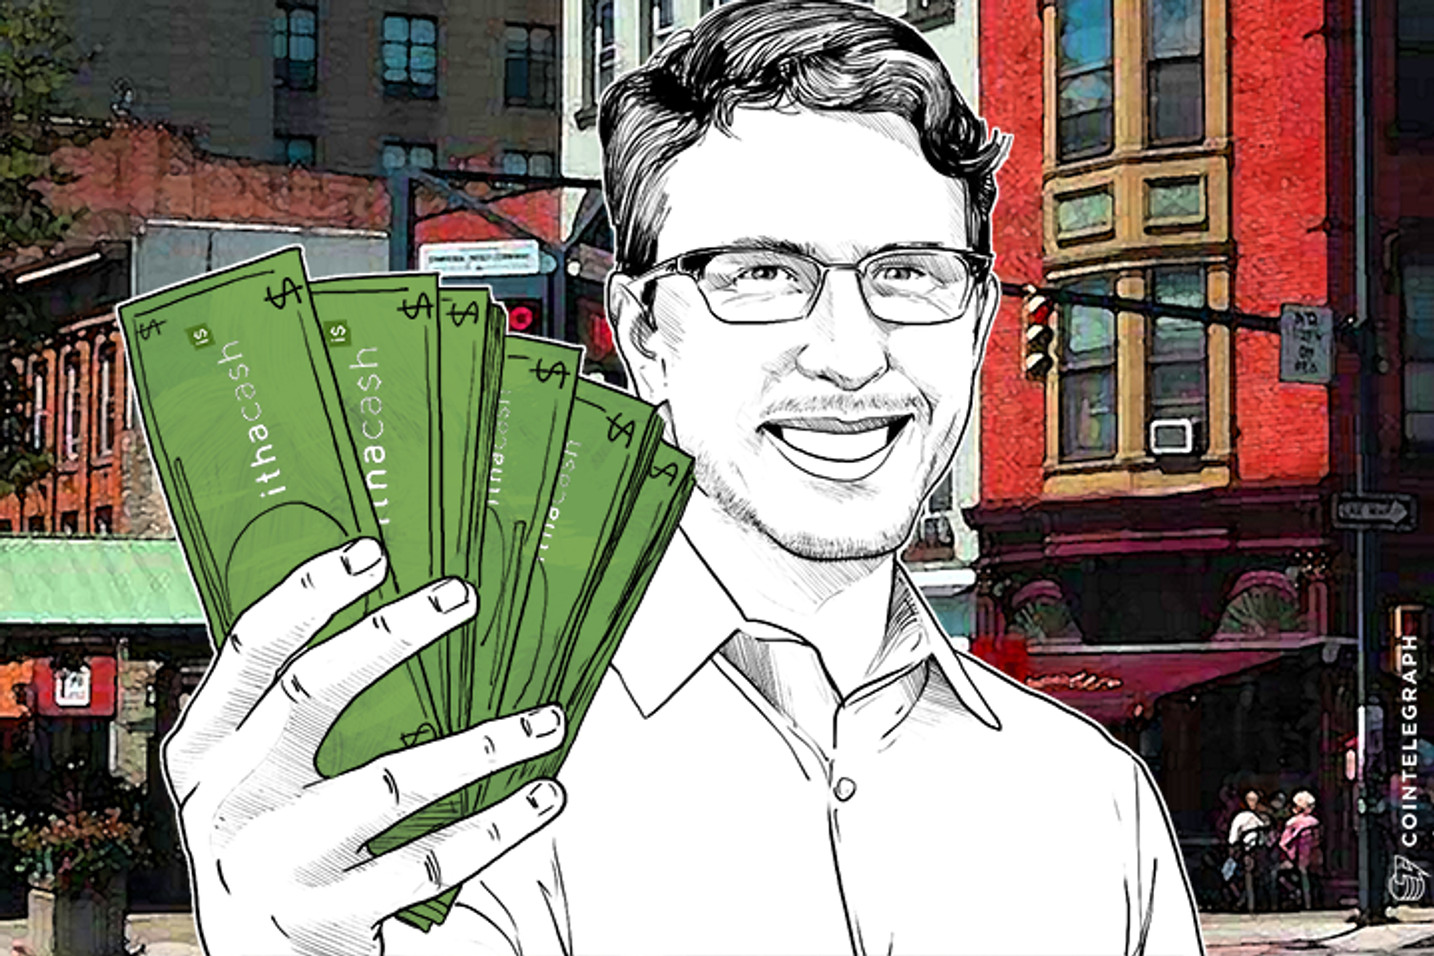 Ithaca, NY Launches its Own Digital Currency to Boost Local Economy